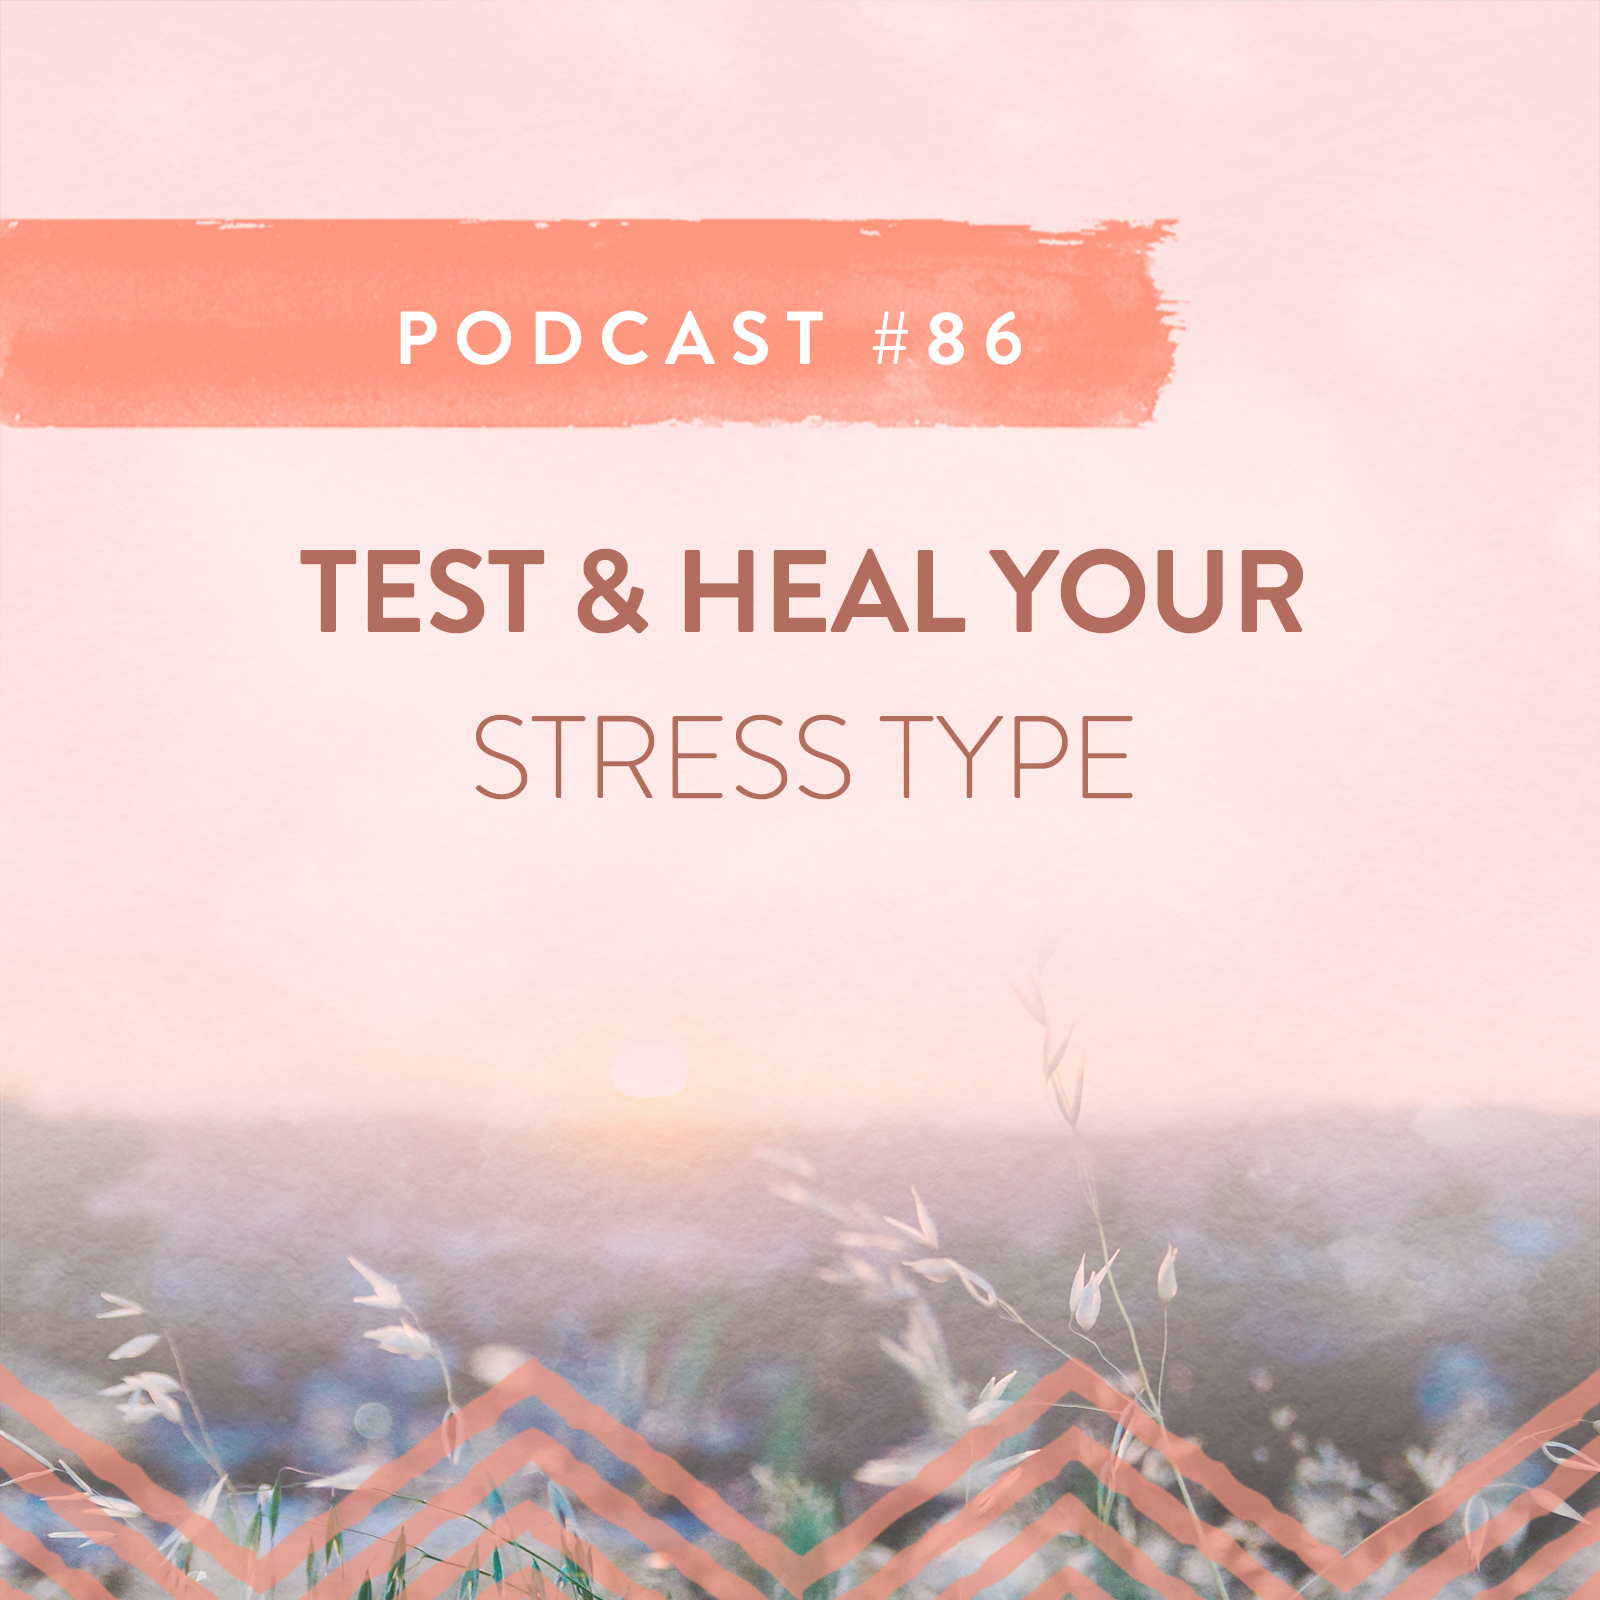 TEST AND HEAL YOUR STRESS TYPE